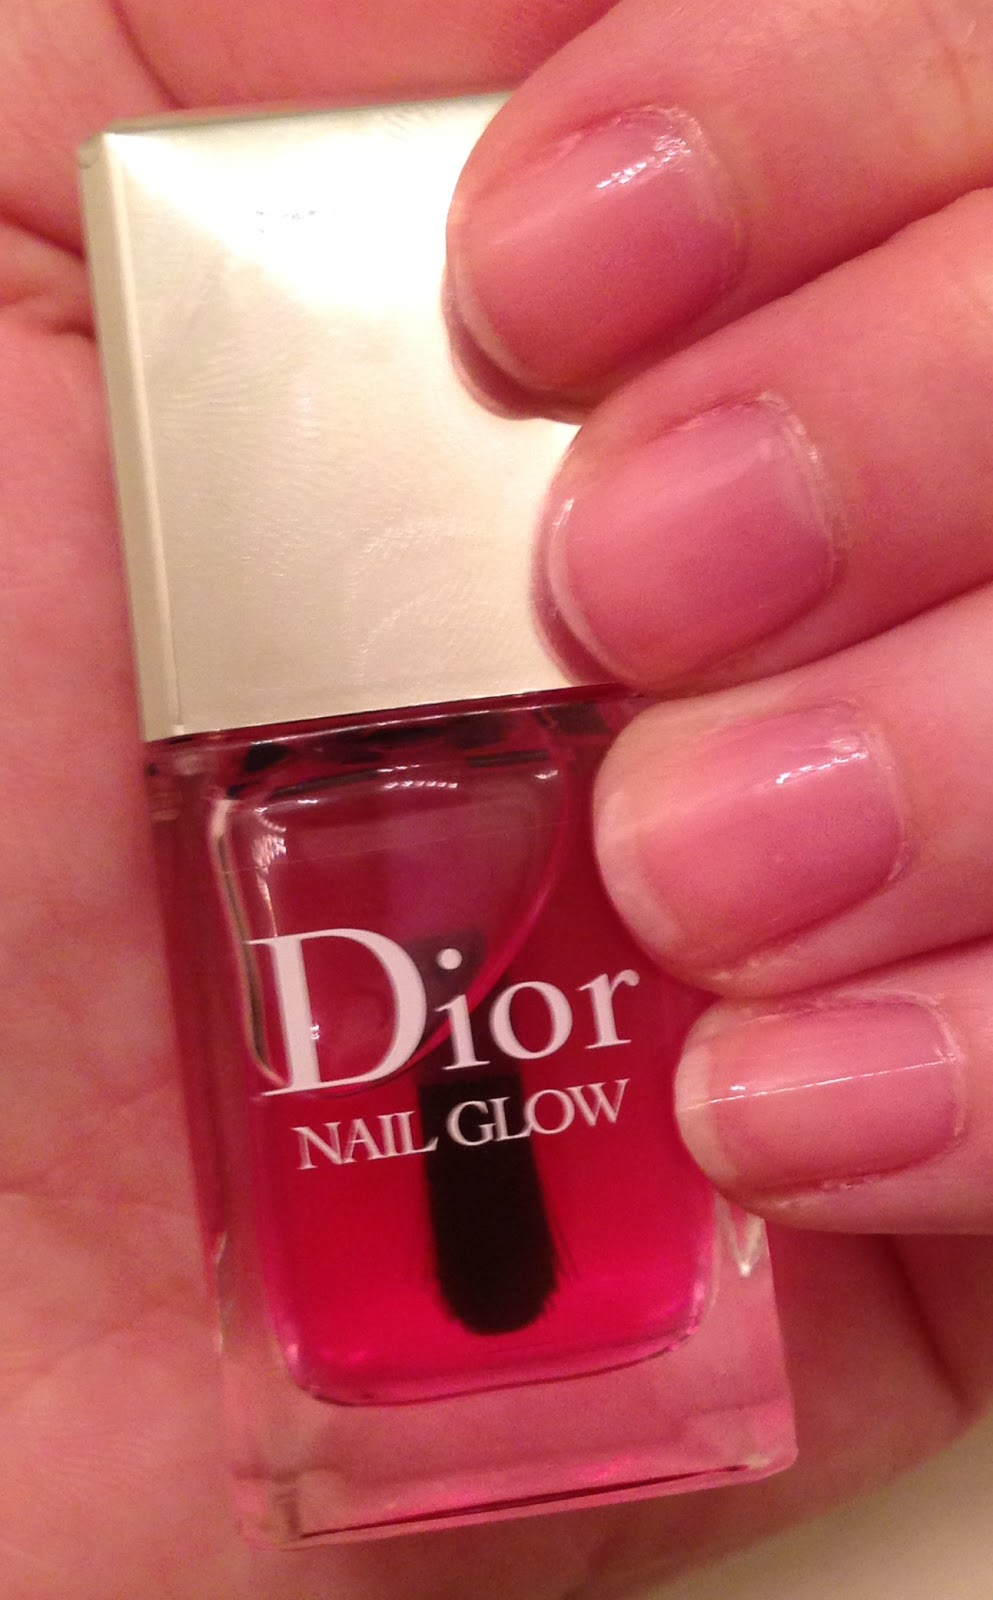 The Beauty of Life: Glow On: Dior Nail Glow